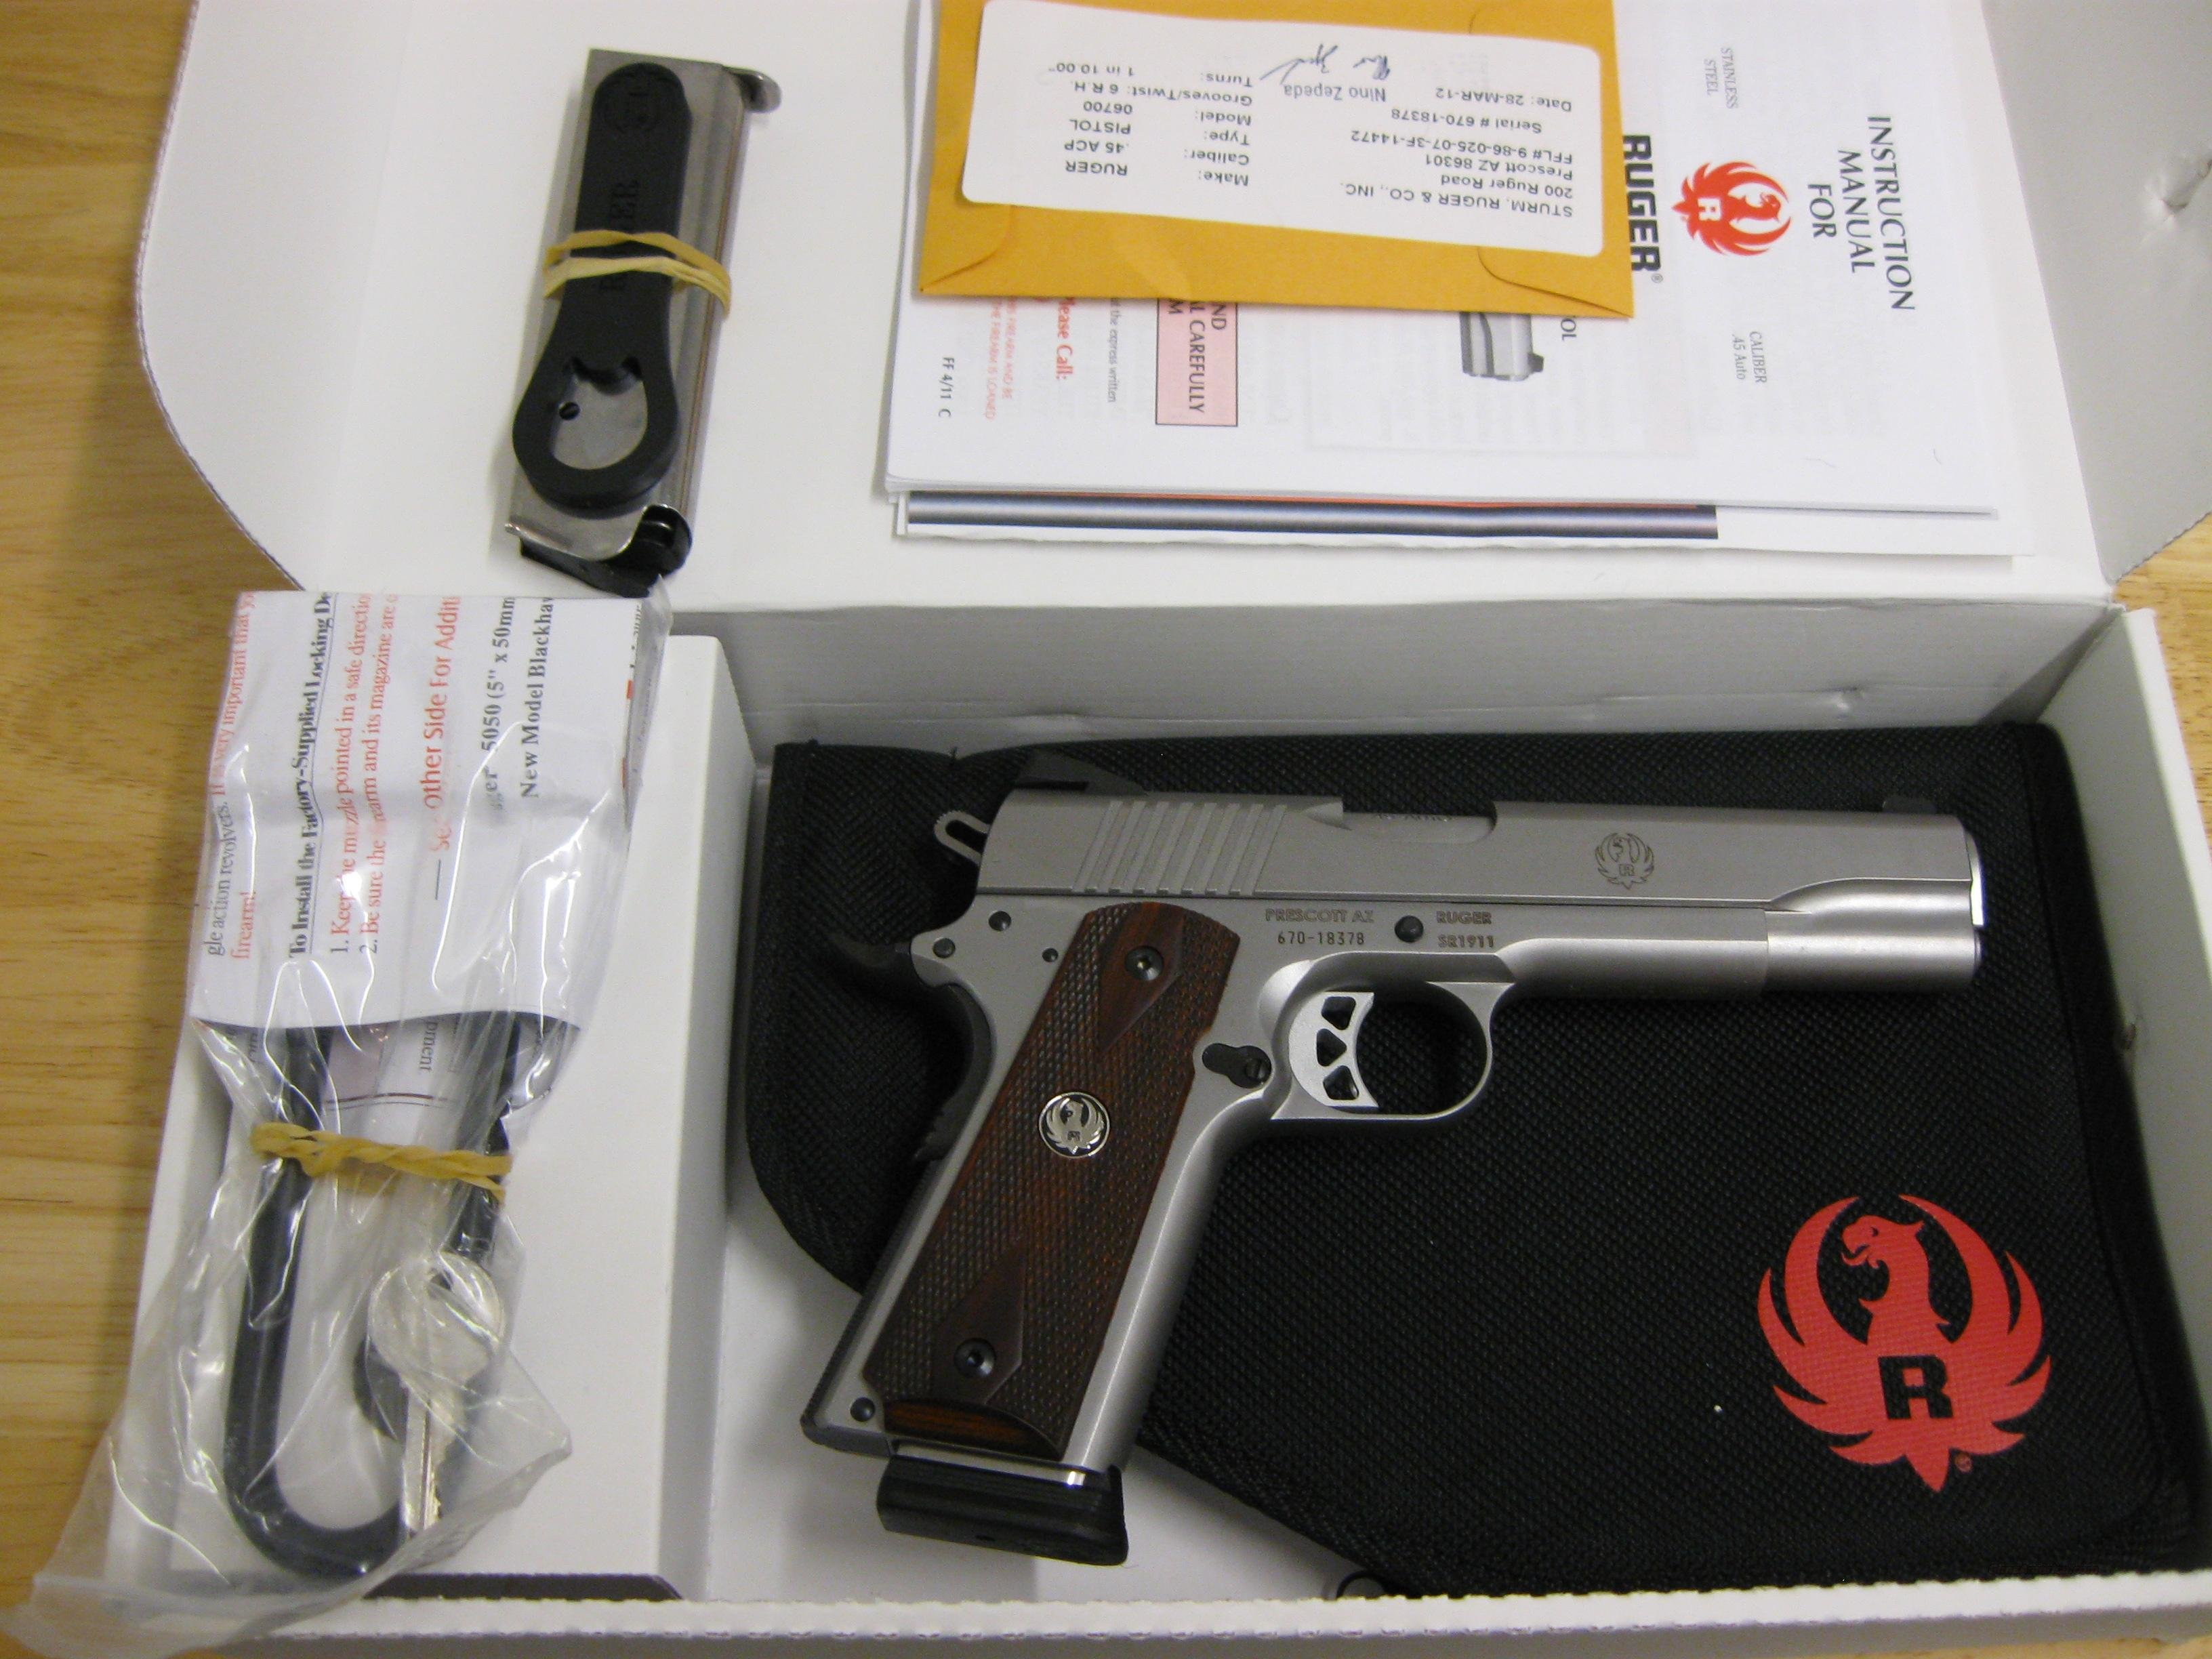 Ruger SR1911 Semi-Auto Pistol 6700, 45 Automatic Colt Pistol (ACP), 5 in, Wood Grip, Stainless Finish, 8 Rd  Guns > Pistols > Ruger Semi-Auto Pistols > SR9